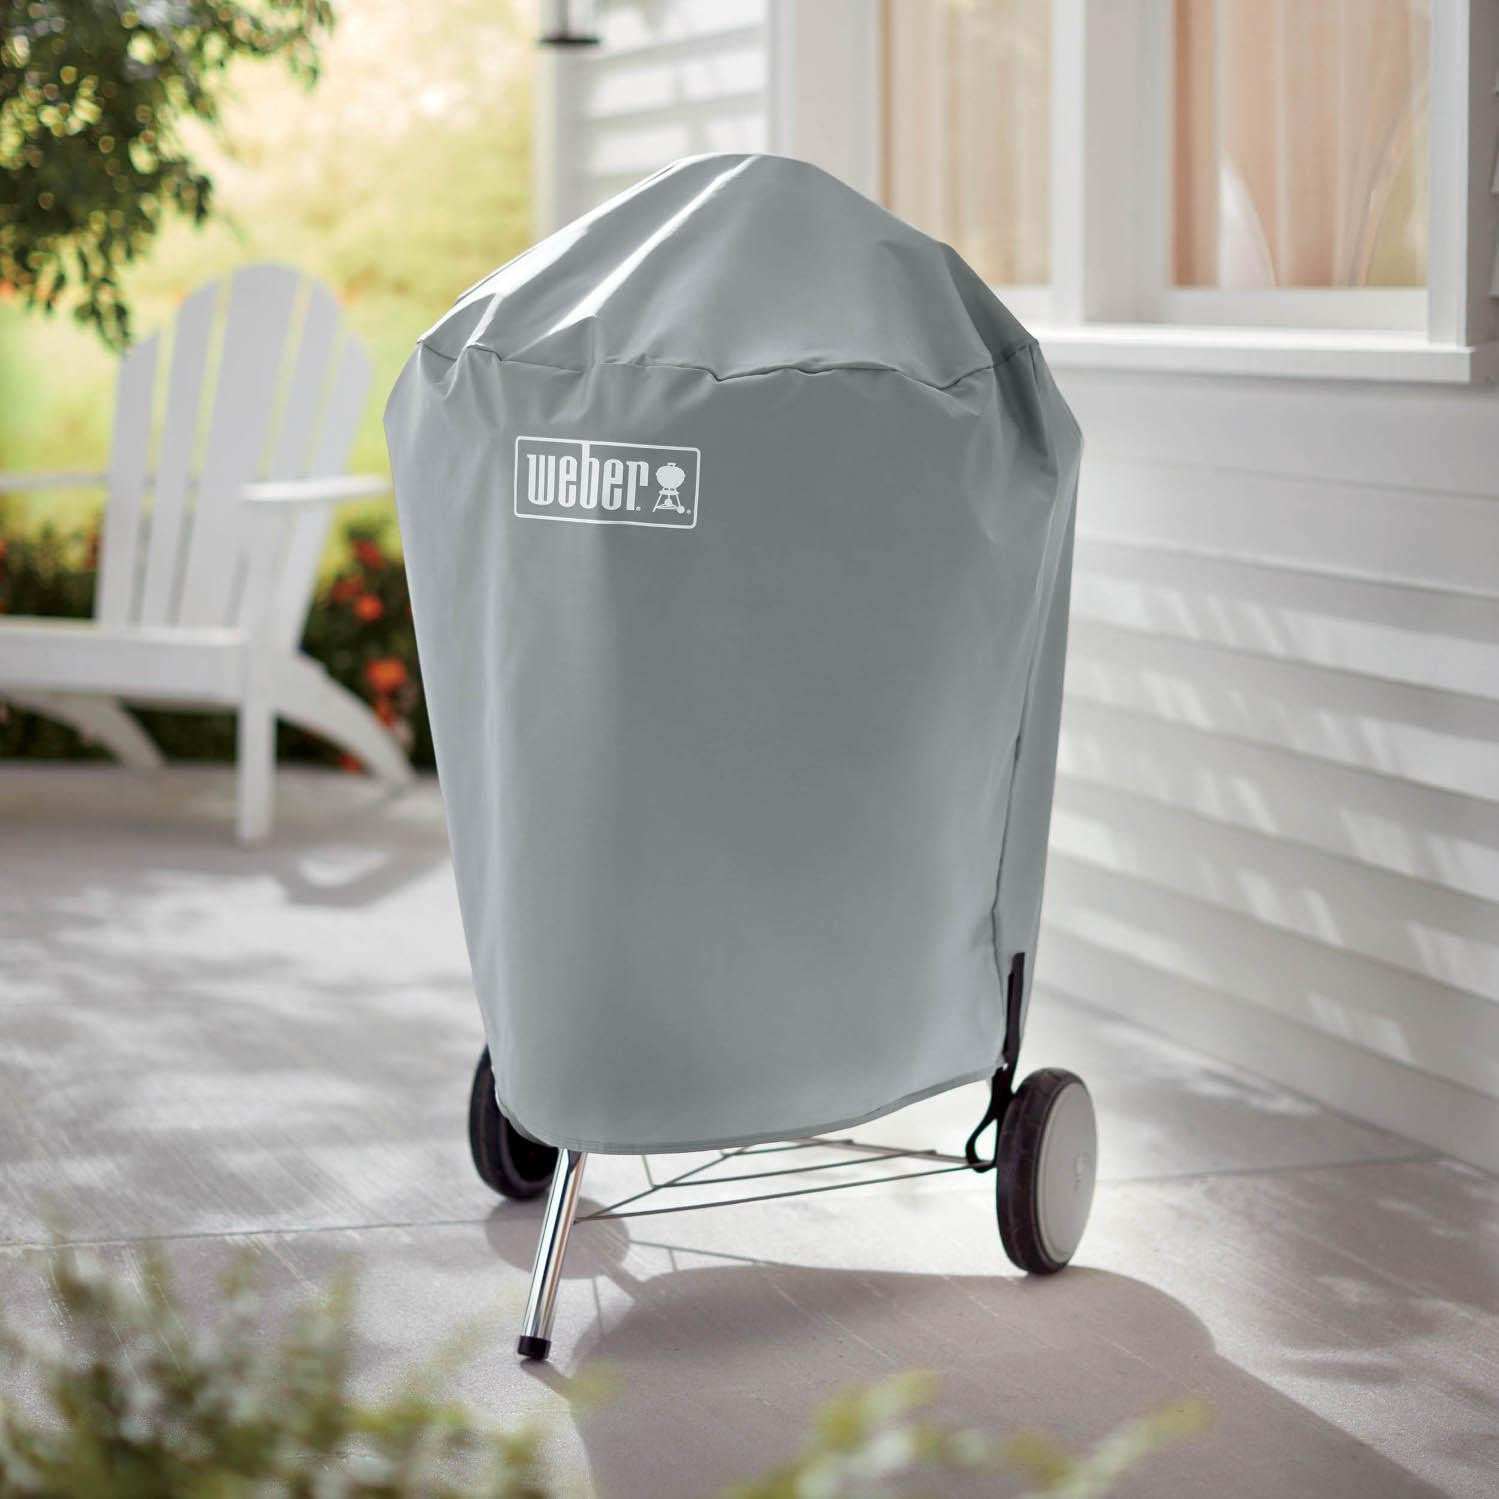 Weber 7176 Charcoal Kettle Grill Cover For Weber 22-Inch Grills